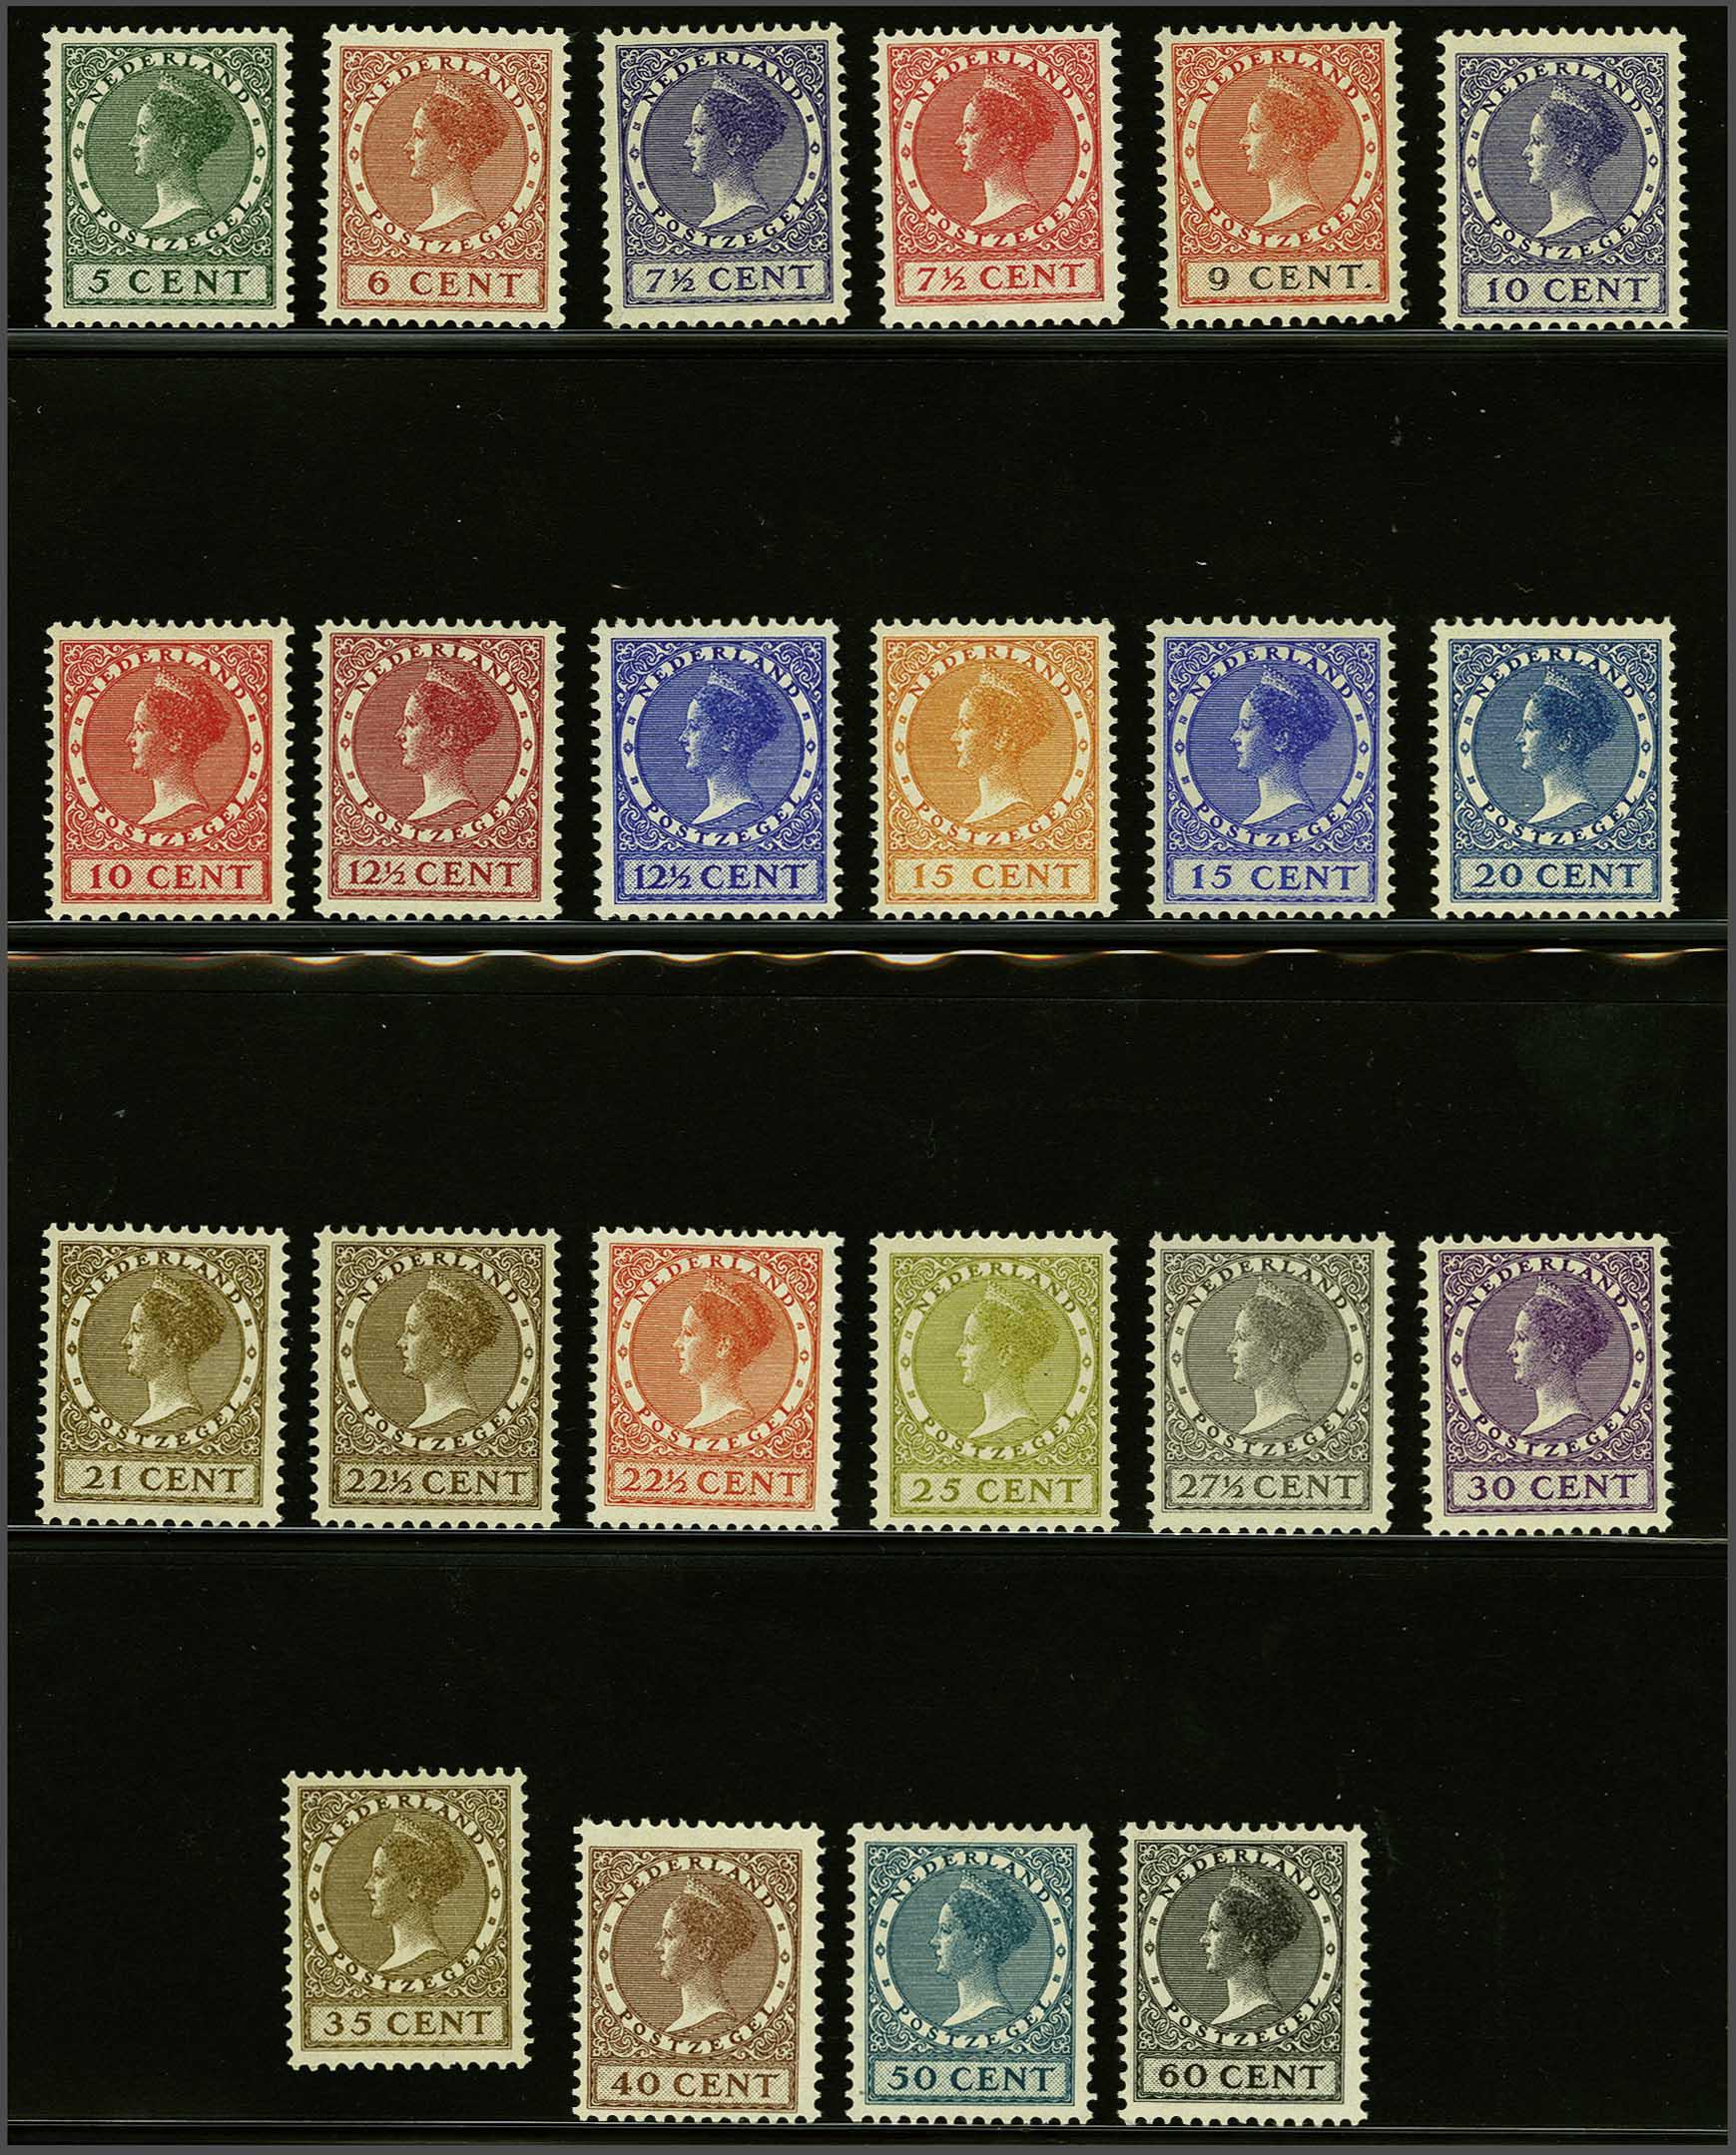 Lot 1867 - Netherlands and former colonies NL 1924 Lebeau and Veth -  Corinphila Veilingen Auction 245-246 Day 3 - Netherlands and former colonies - Single lots, Collections and lots, Boxes and literature